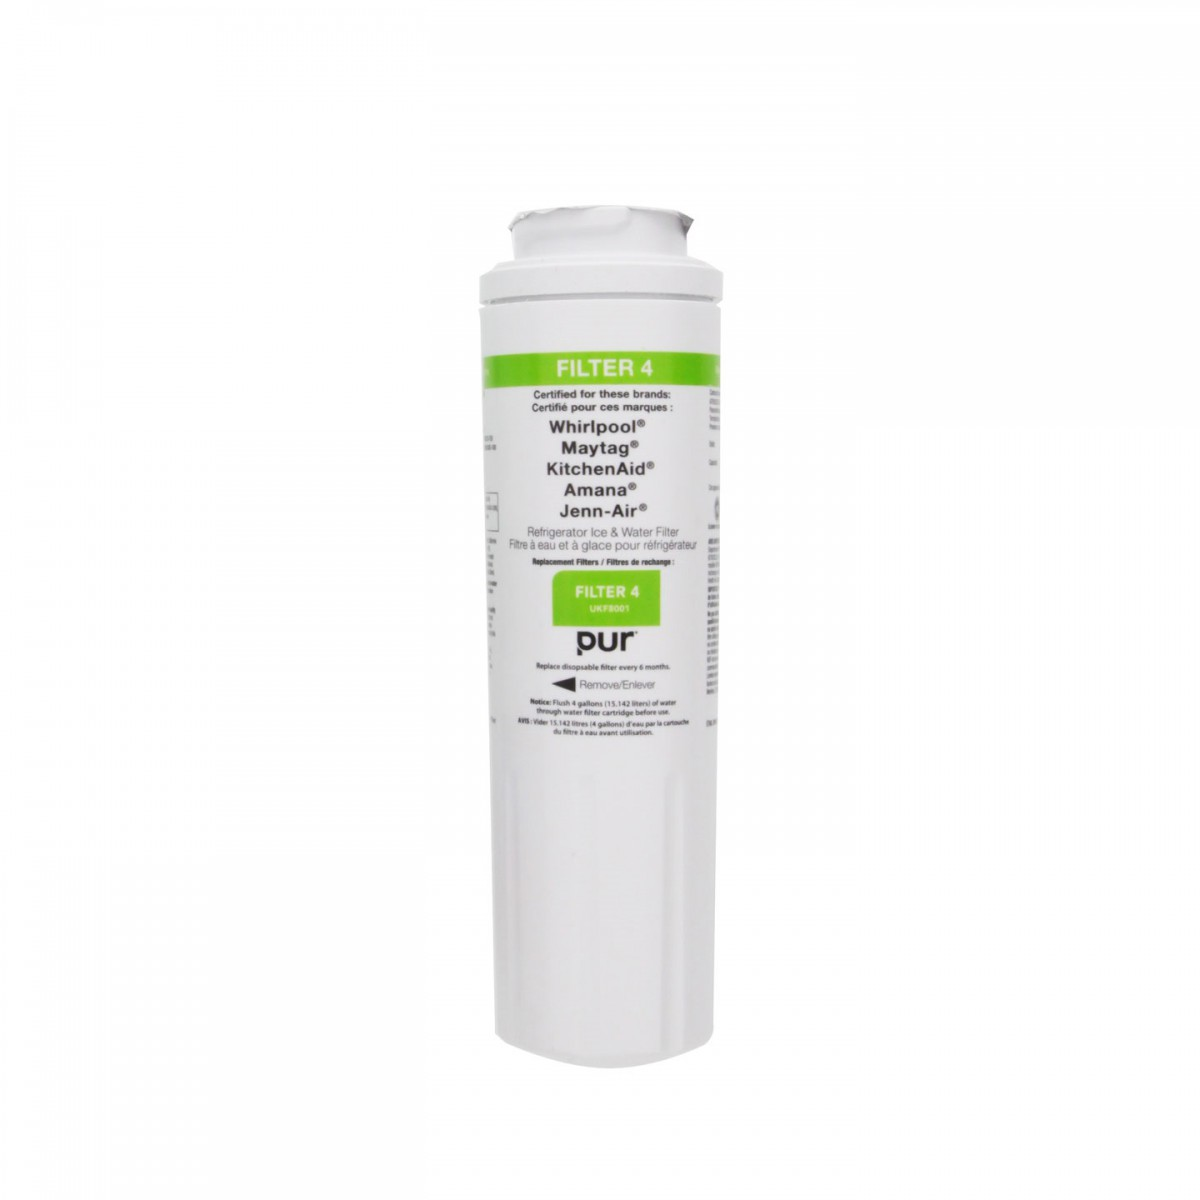 Whirlpool 4396395 refrigerator water filter - Whirlpool refrigerator ice and water filter pur ...